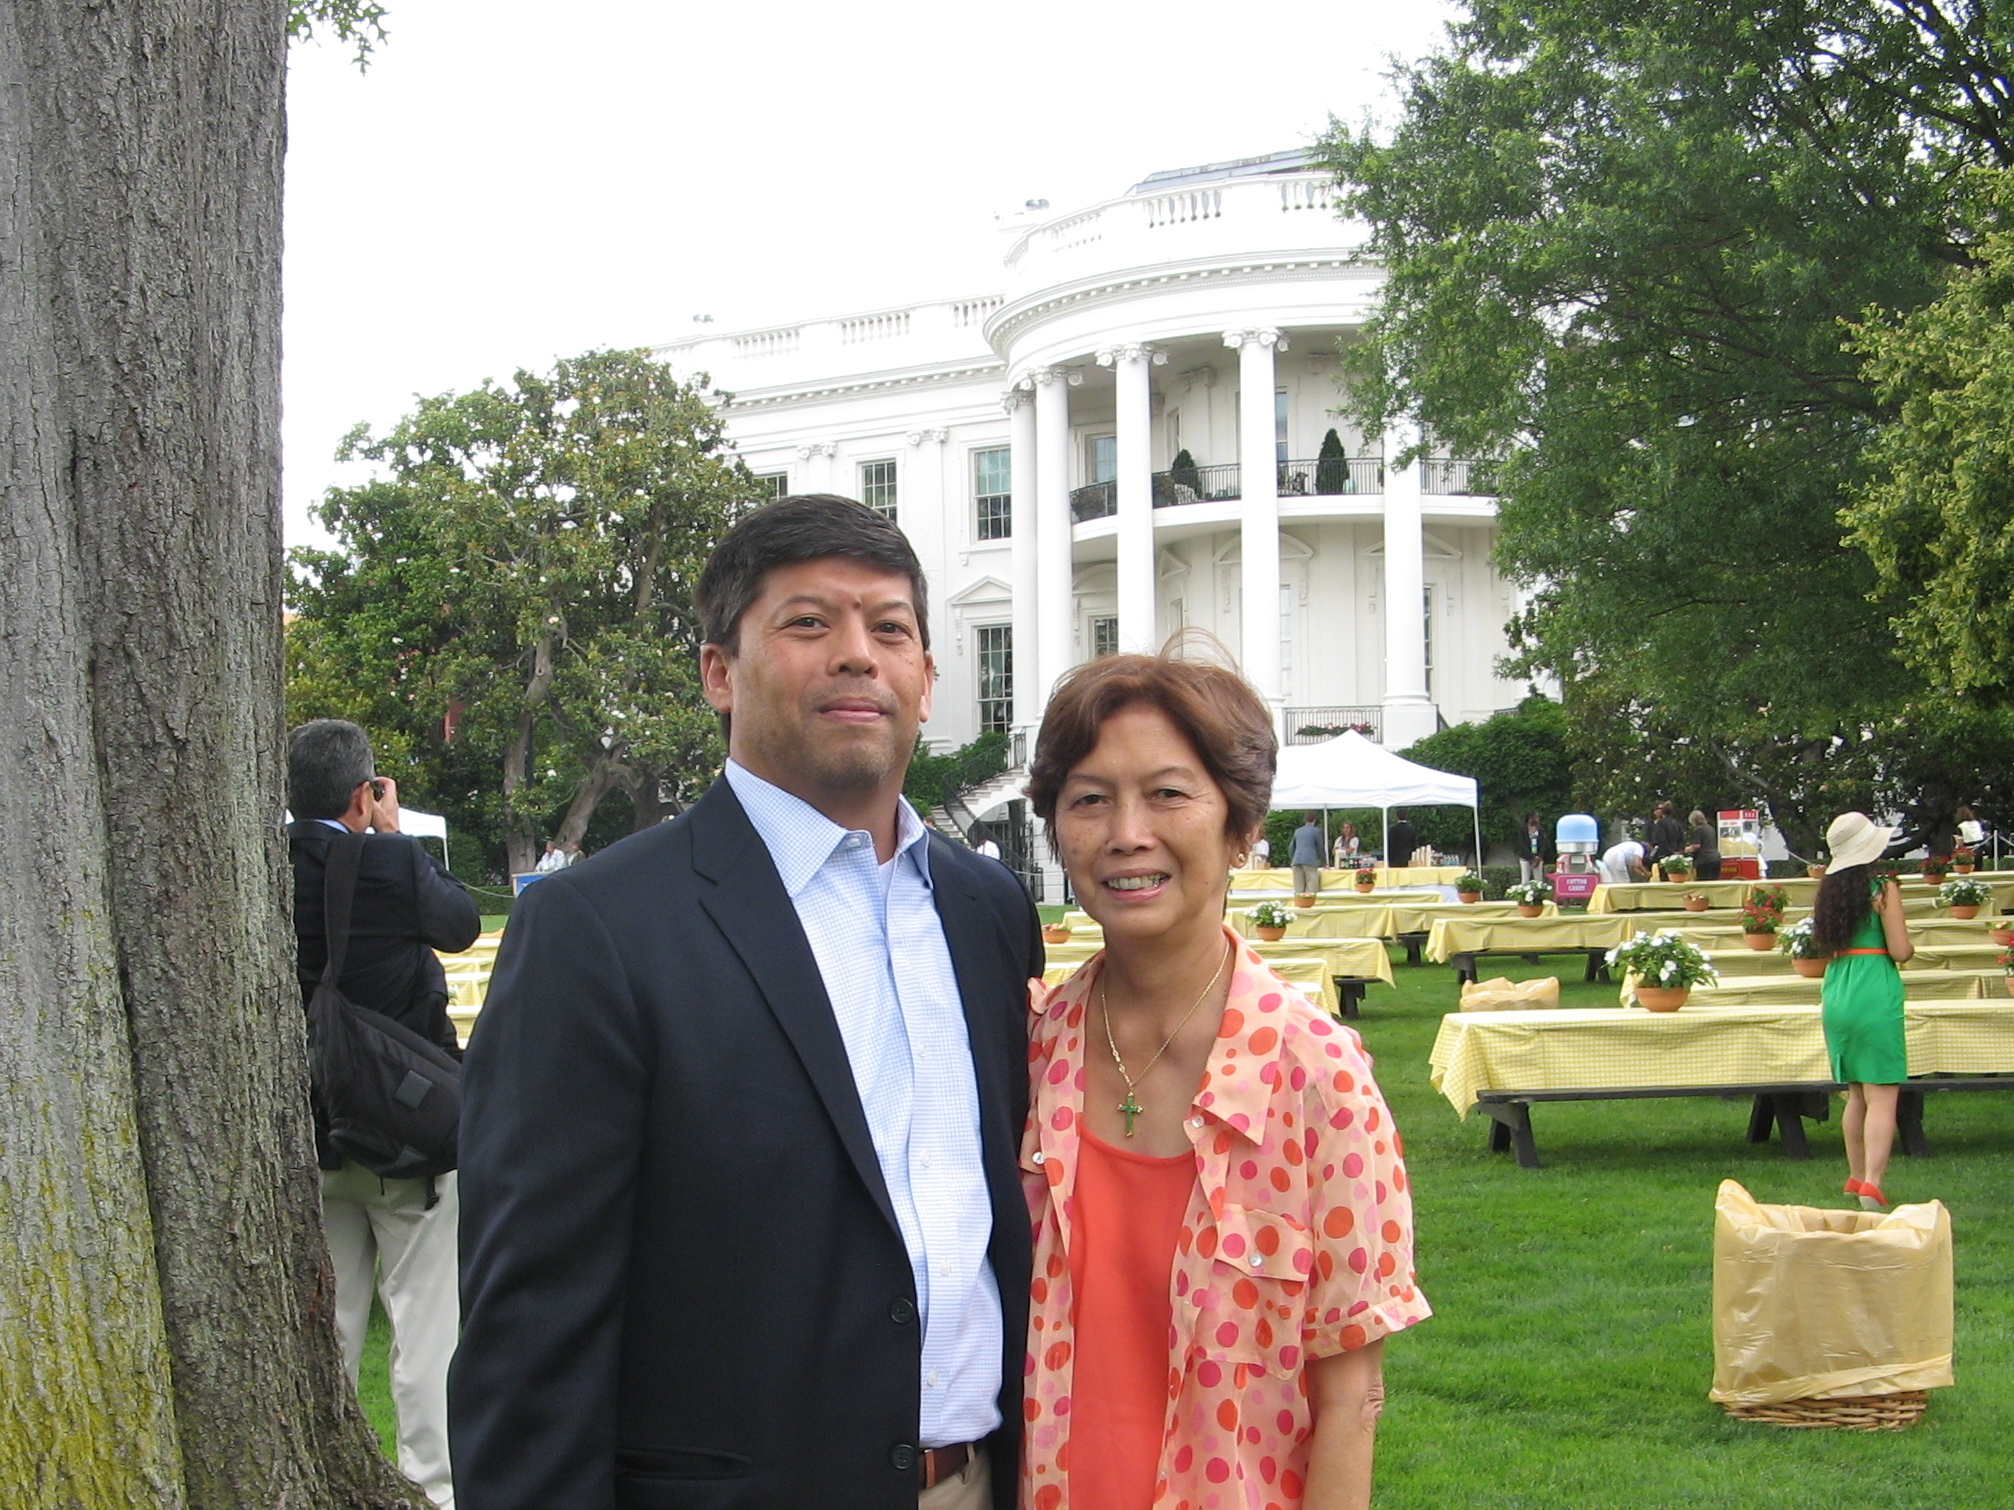 Hector Leonard Perez Vargas Jr at the White House